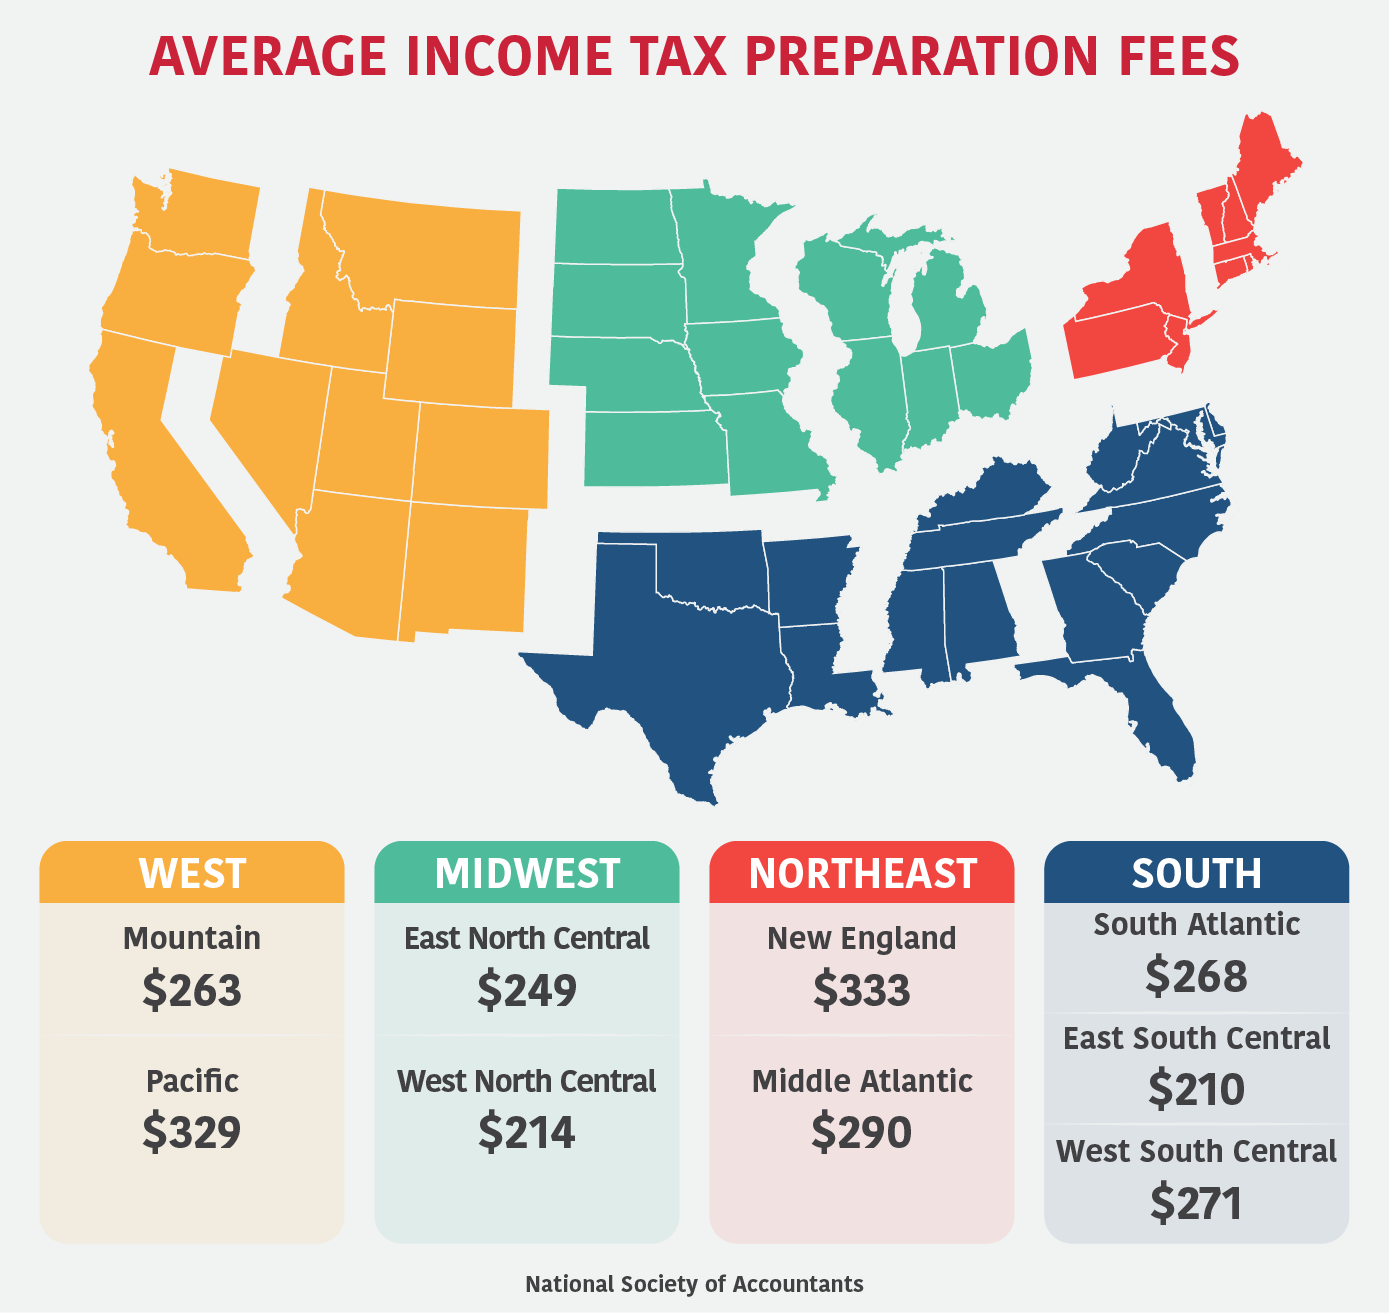 Average income tax preparation fees